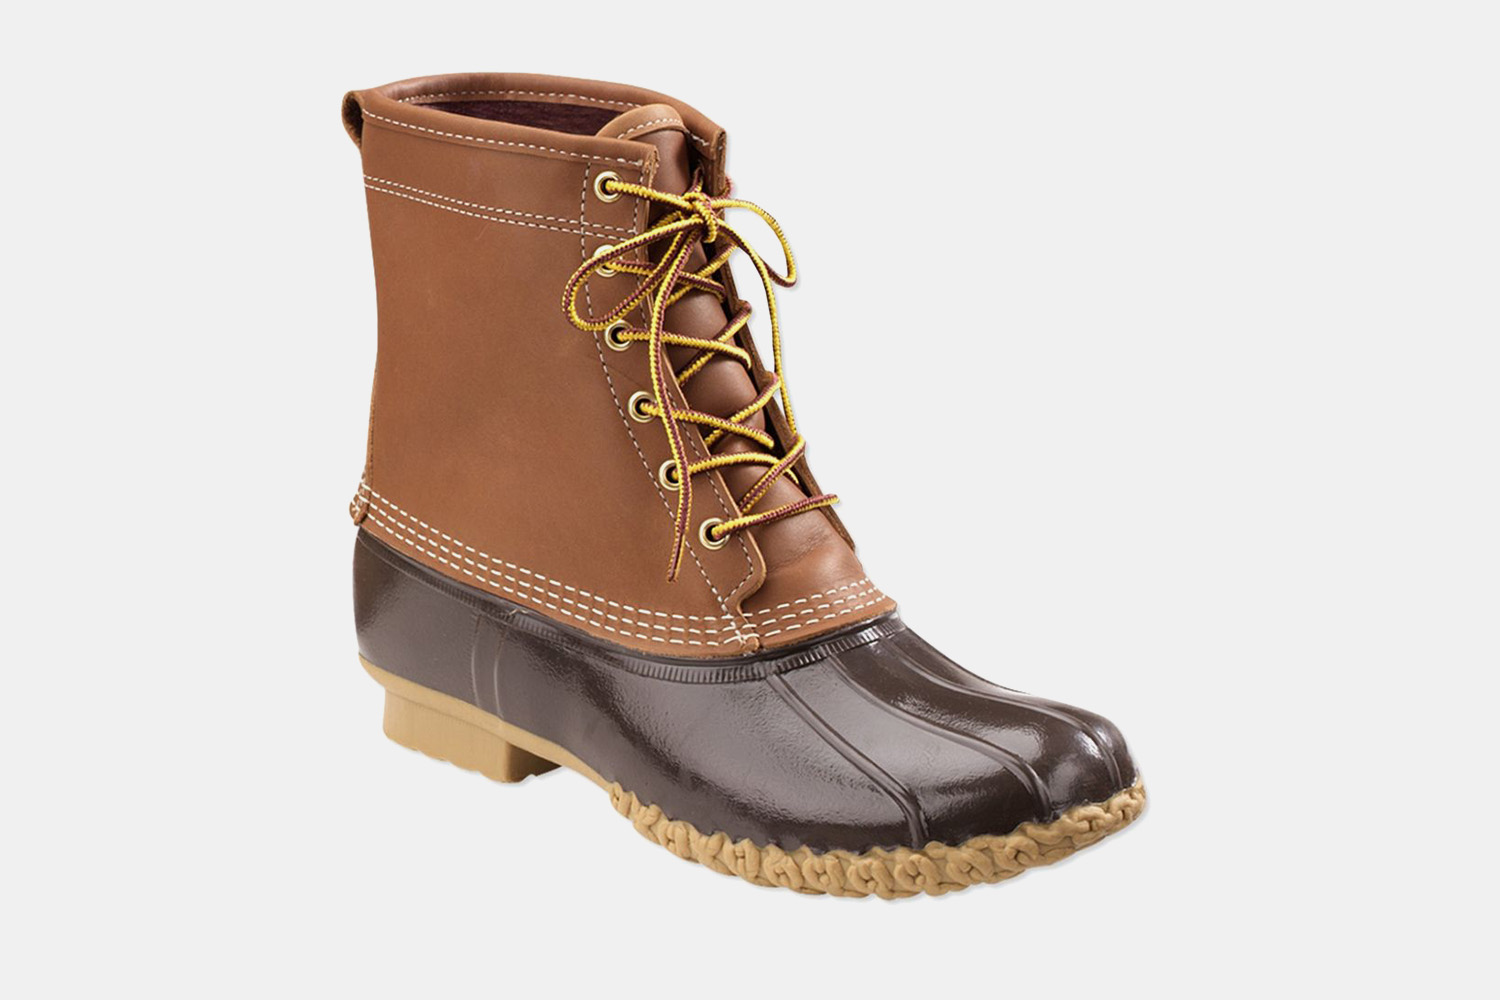 Tremendous Deal The Iconic L L Bean Boots Are Currently 25 Off Evergreenethics Interior Chair Design Evergreenethicsorg